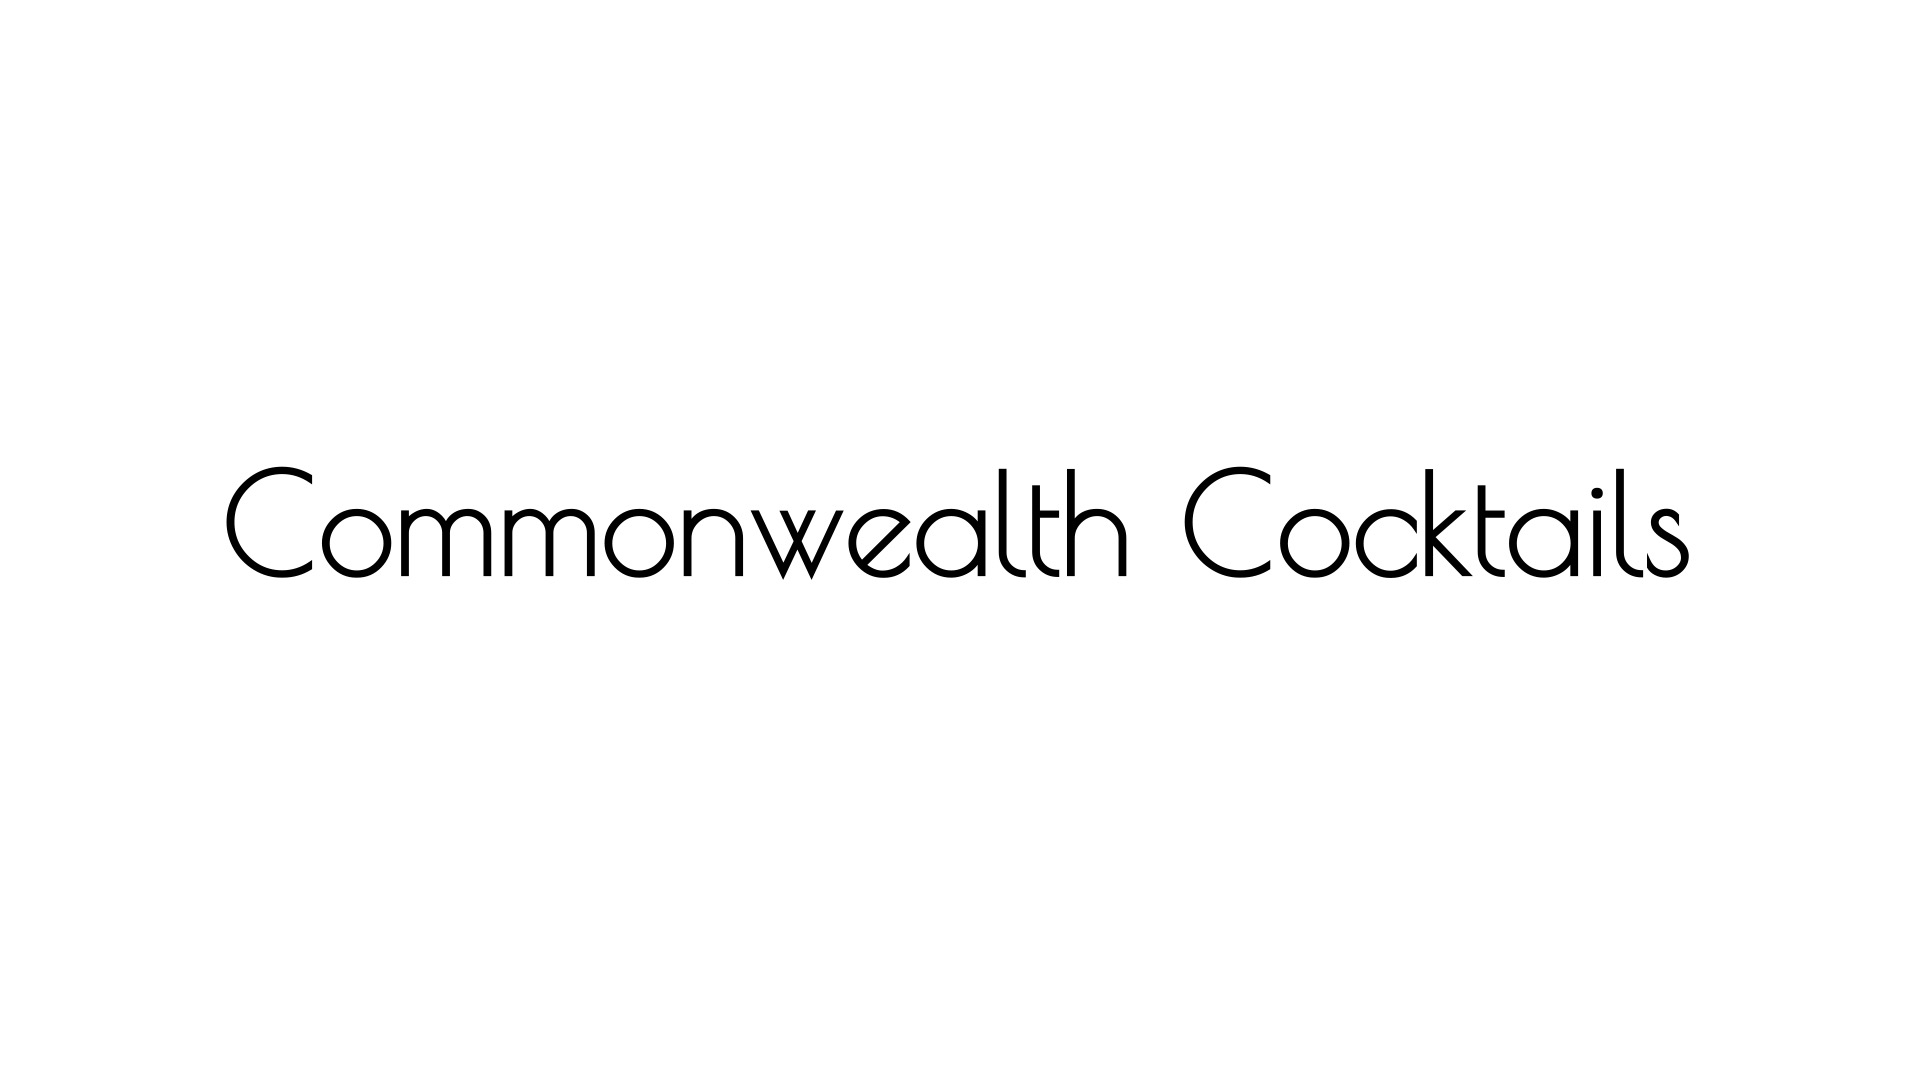 Video for Moscow Mule (IBA) from Commonwealth Cocktails